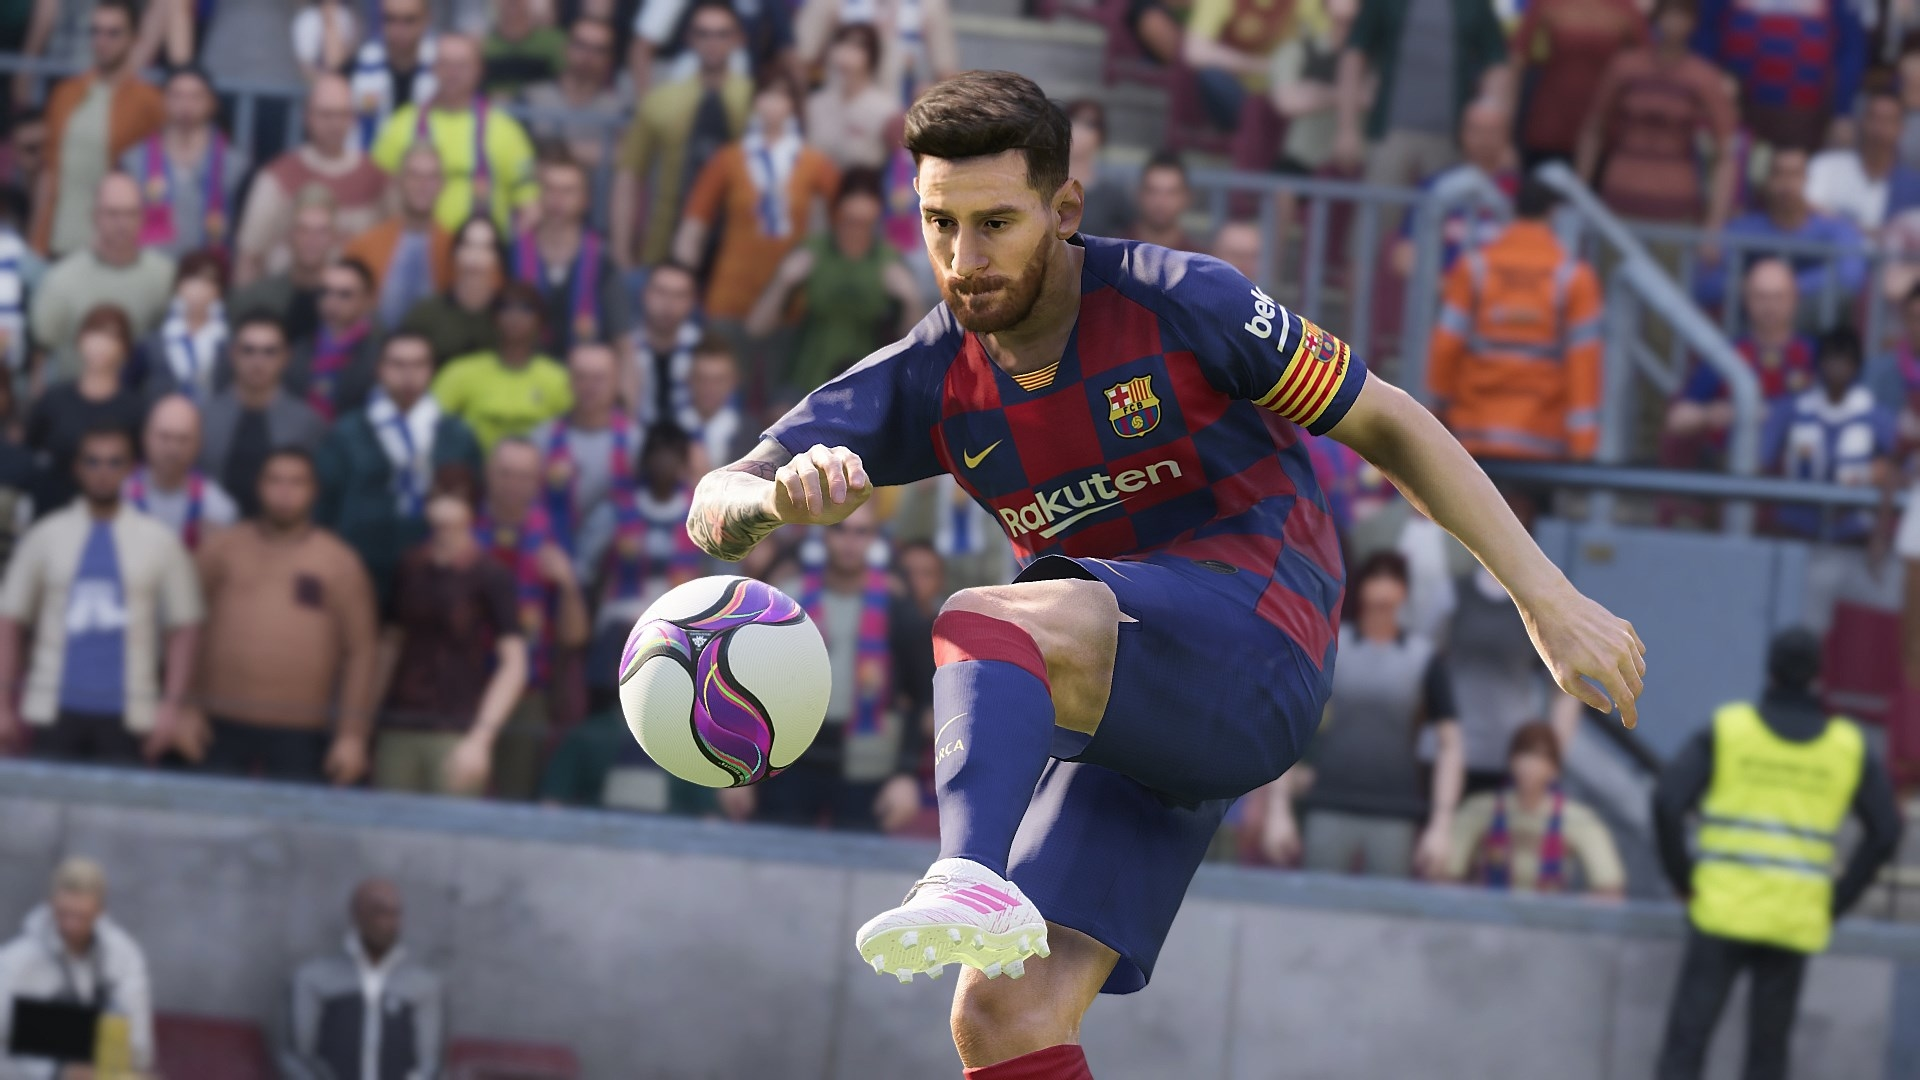 Lionel Messi In eFootball PES 2020 Wallpaper HD Games 4K 1920x1080